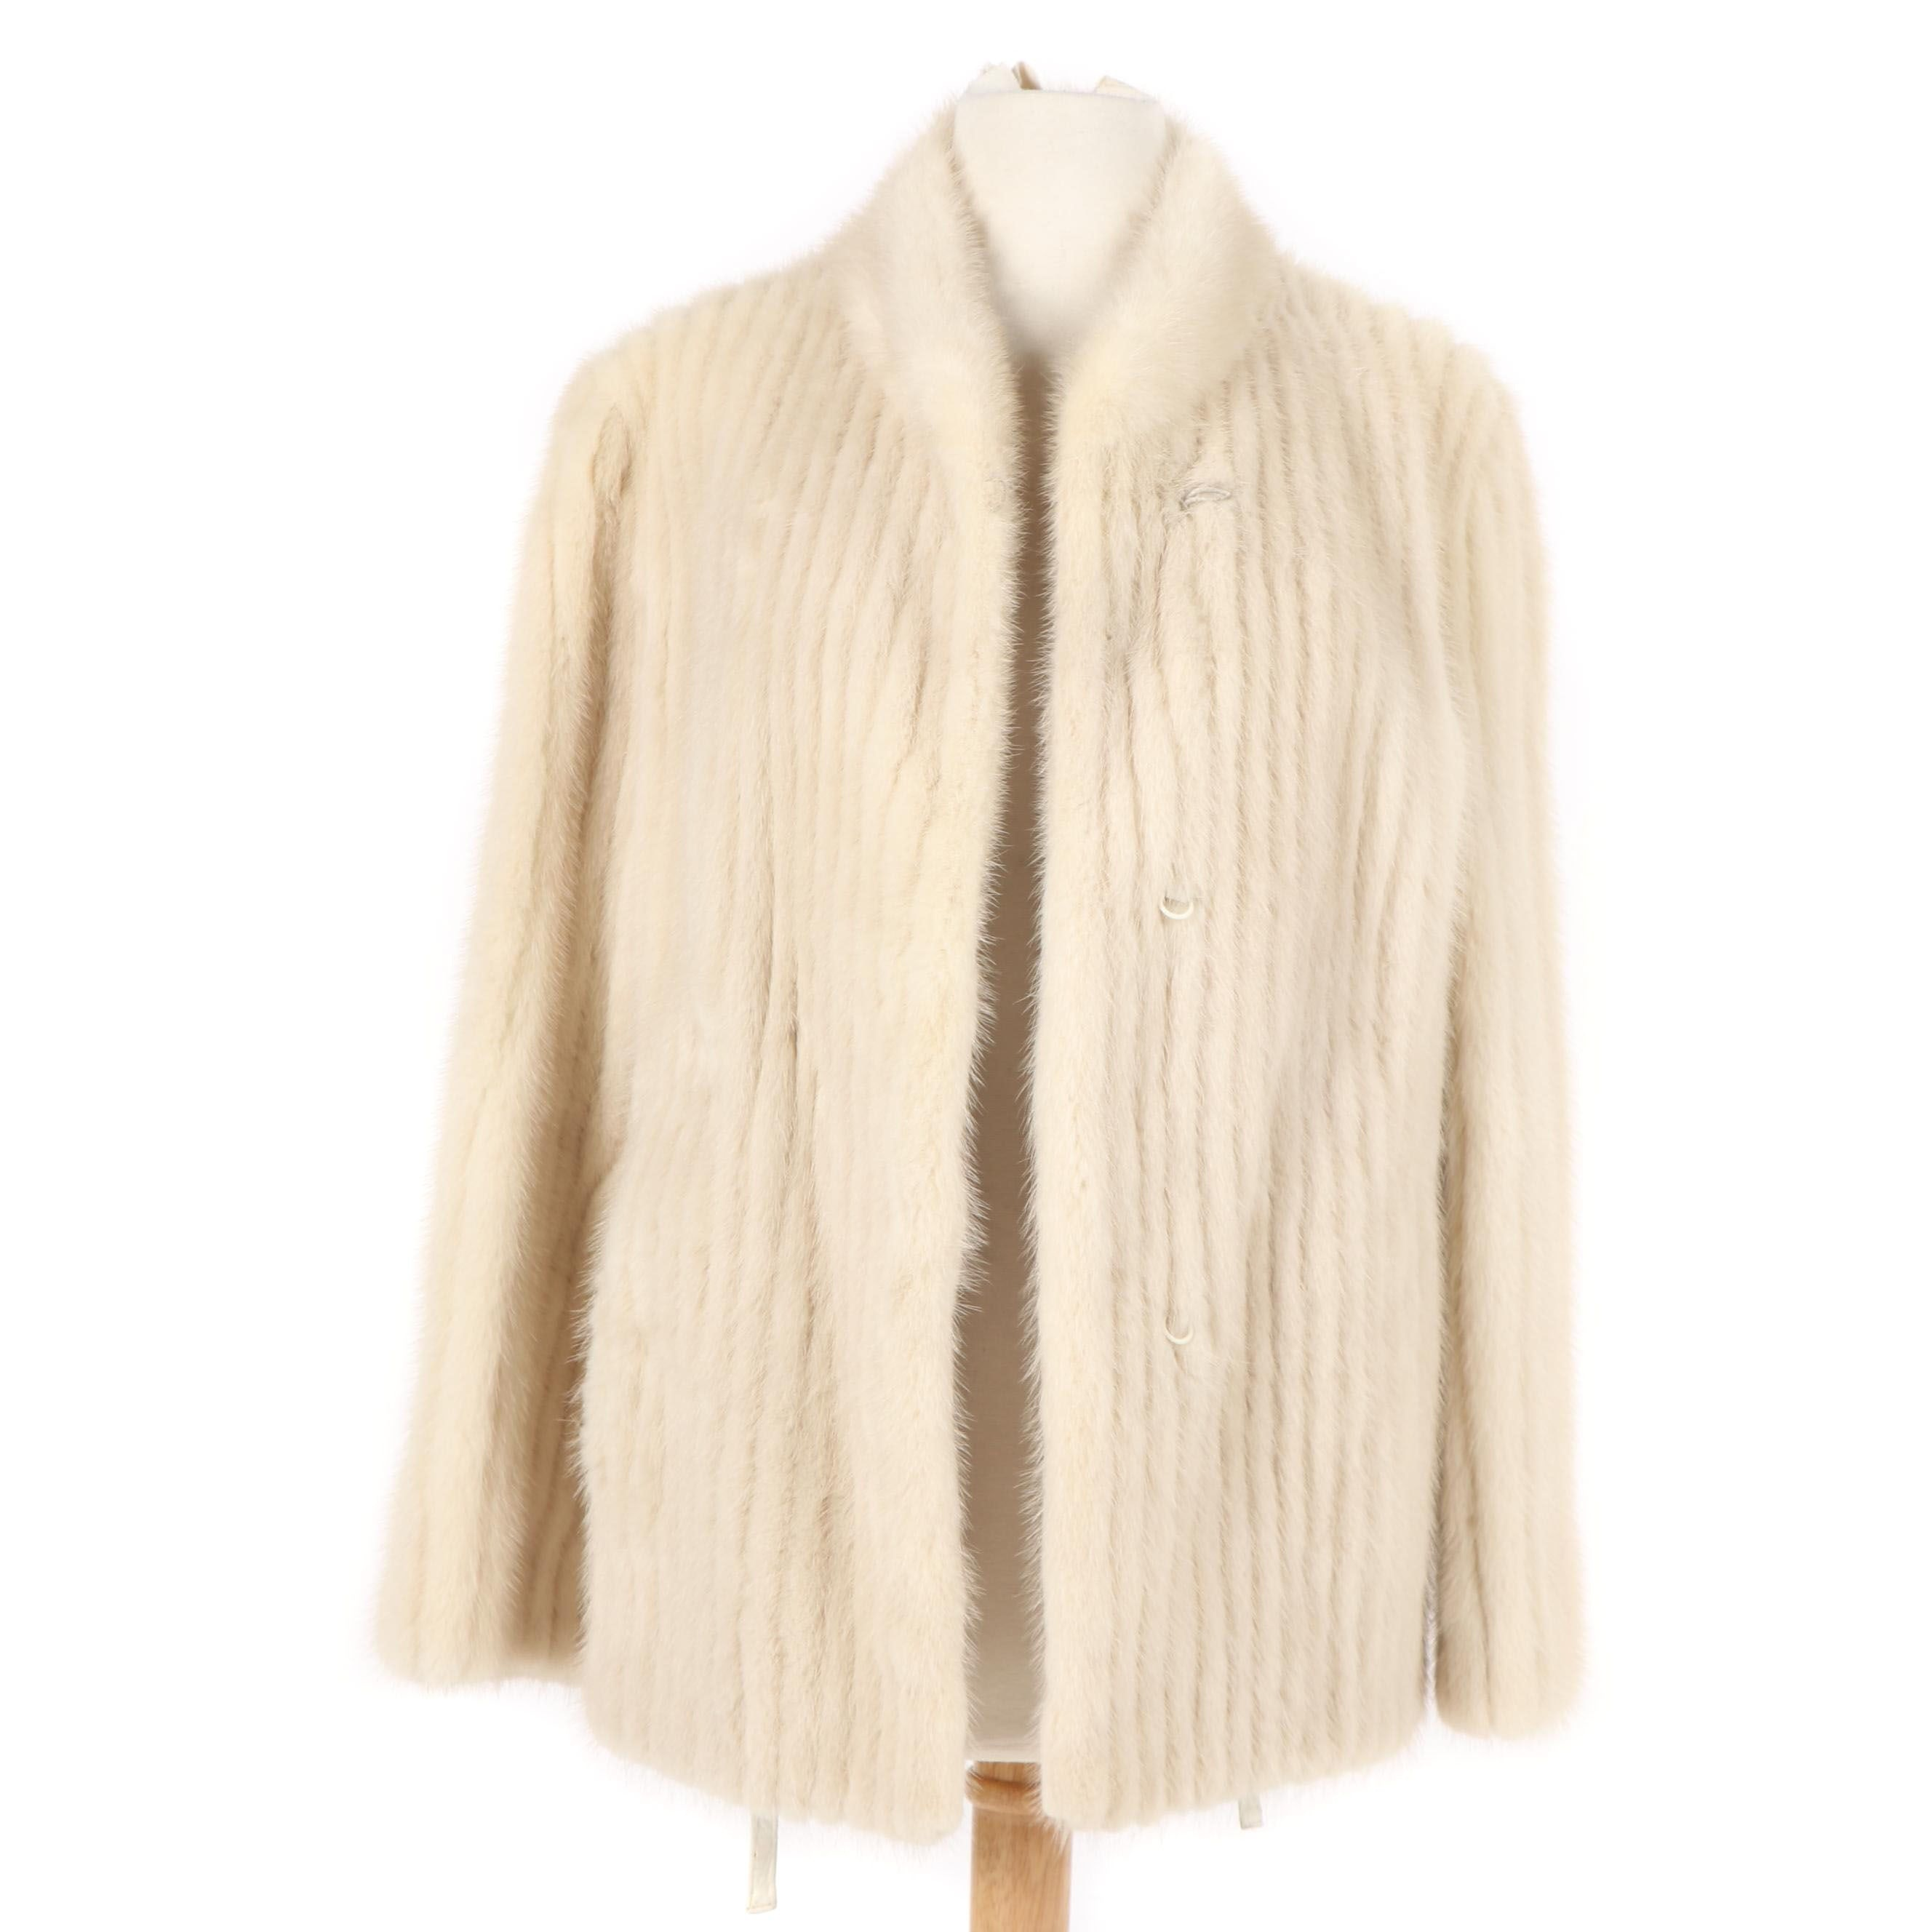 Women's Kahnert Furs of Toronto Channel Cut Tourmaline Mink Fur Jacket